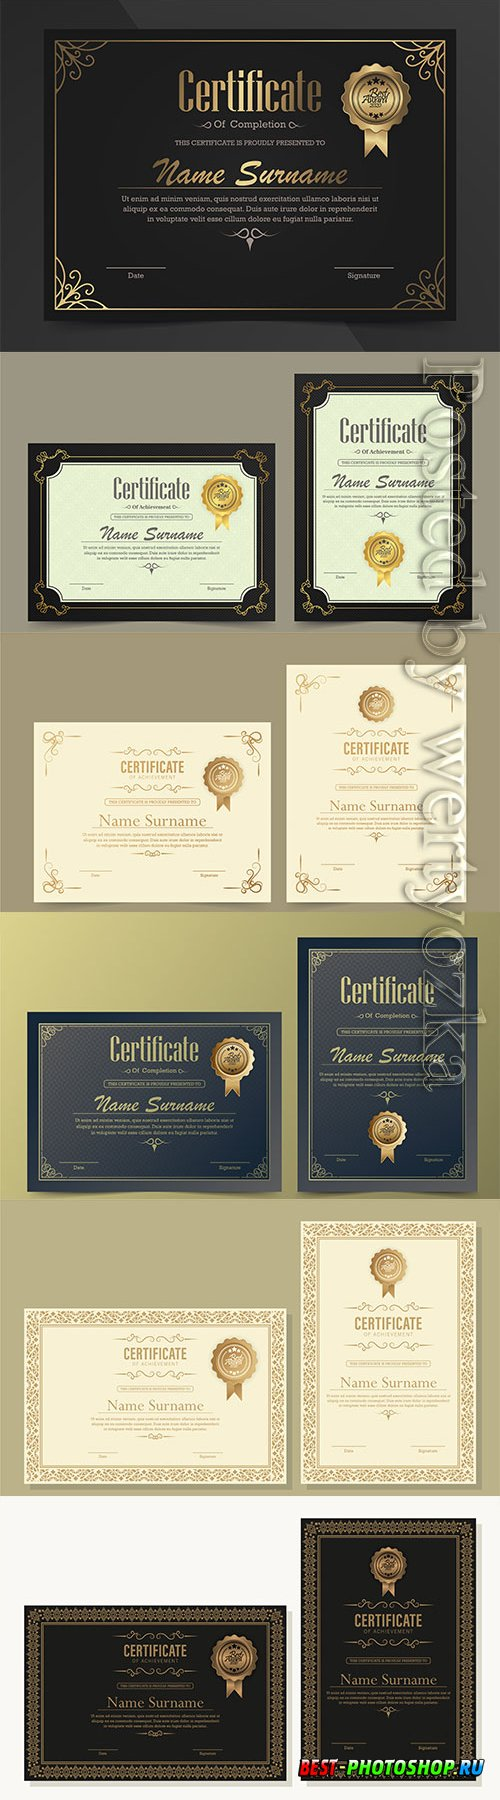 Achievement vector certificate template in vintage style